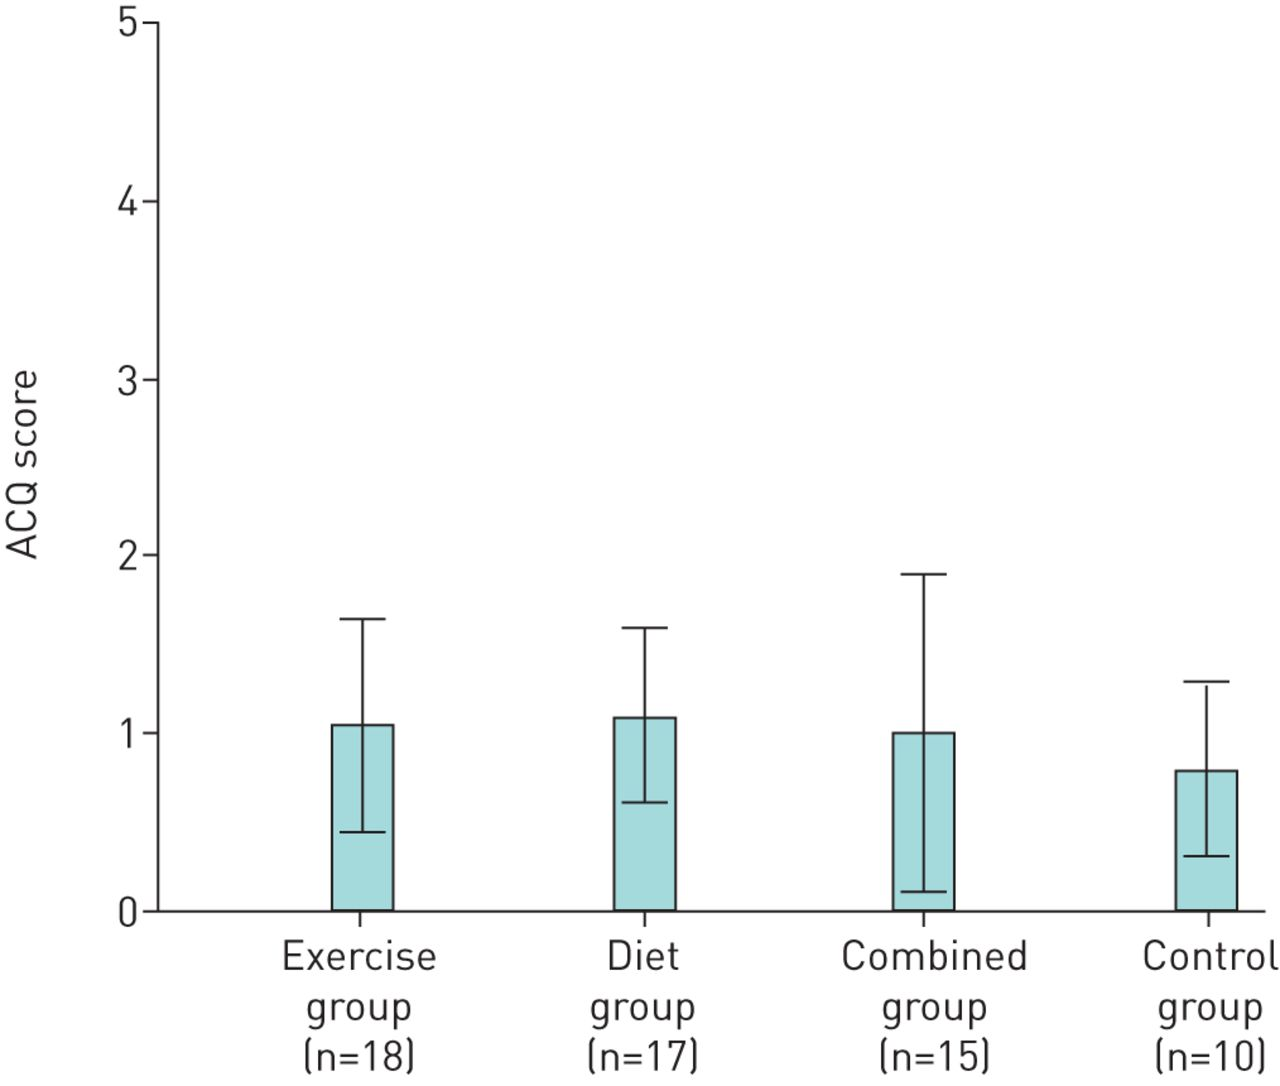 The long-term effect of an exercise and diet intervention in asthma